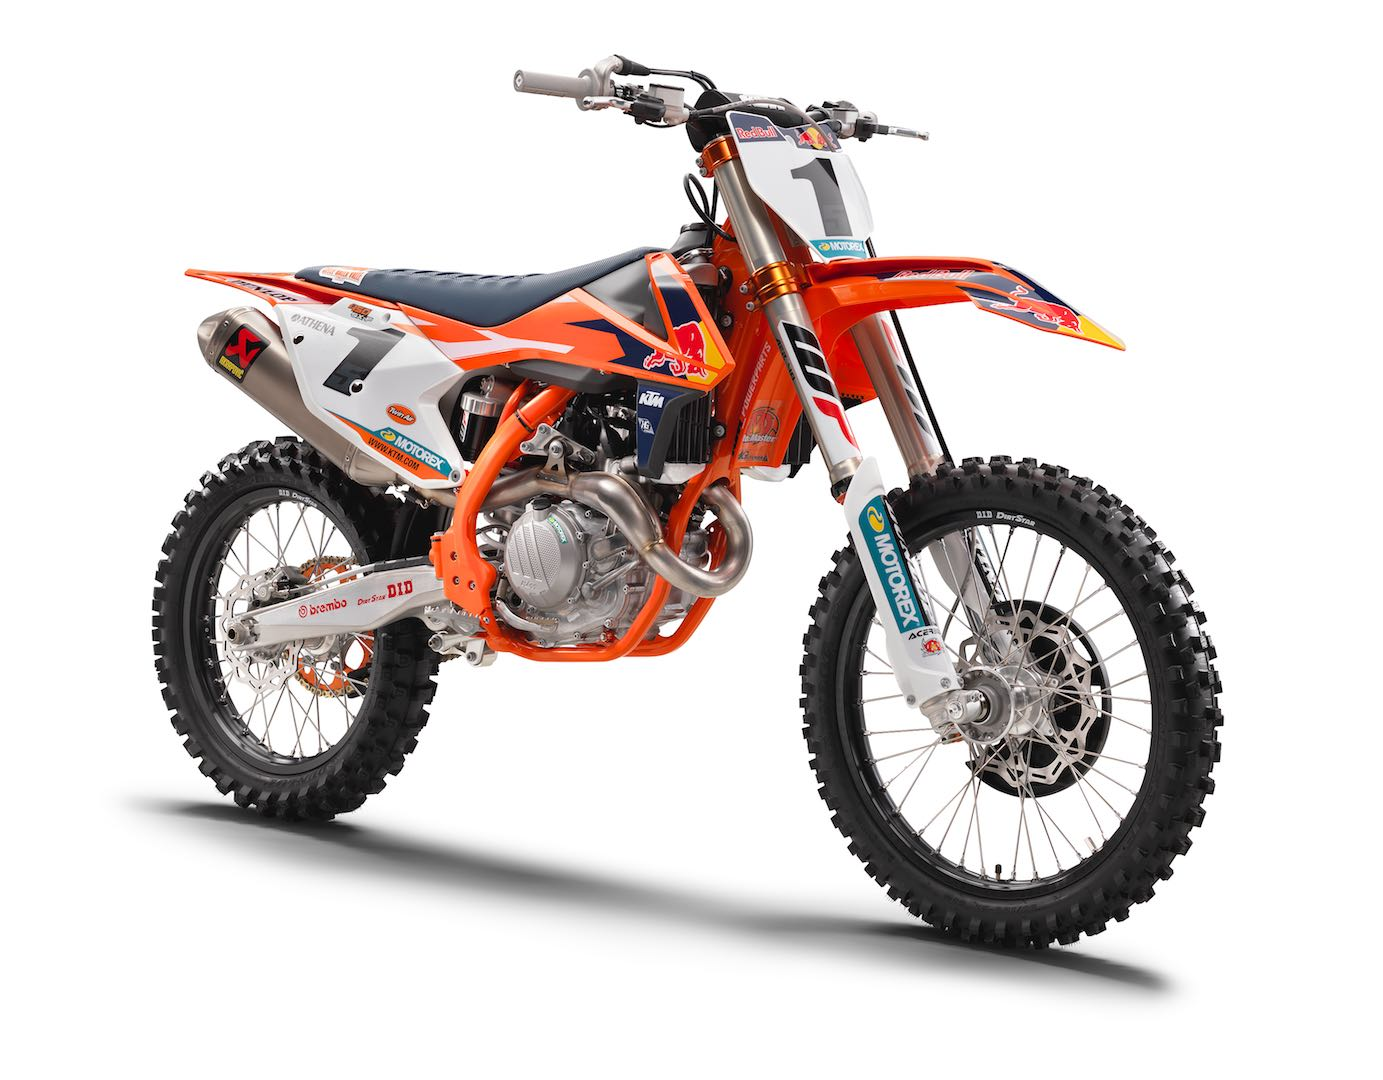 2017 ktm 450 250 sx f factory edition motorcycles unveiled. Black Bedroom Furniture Sets. Home Design Ideas